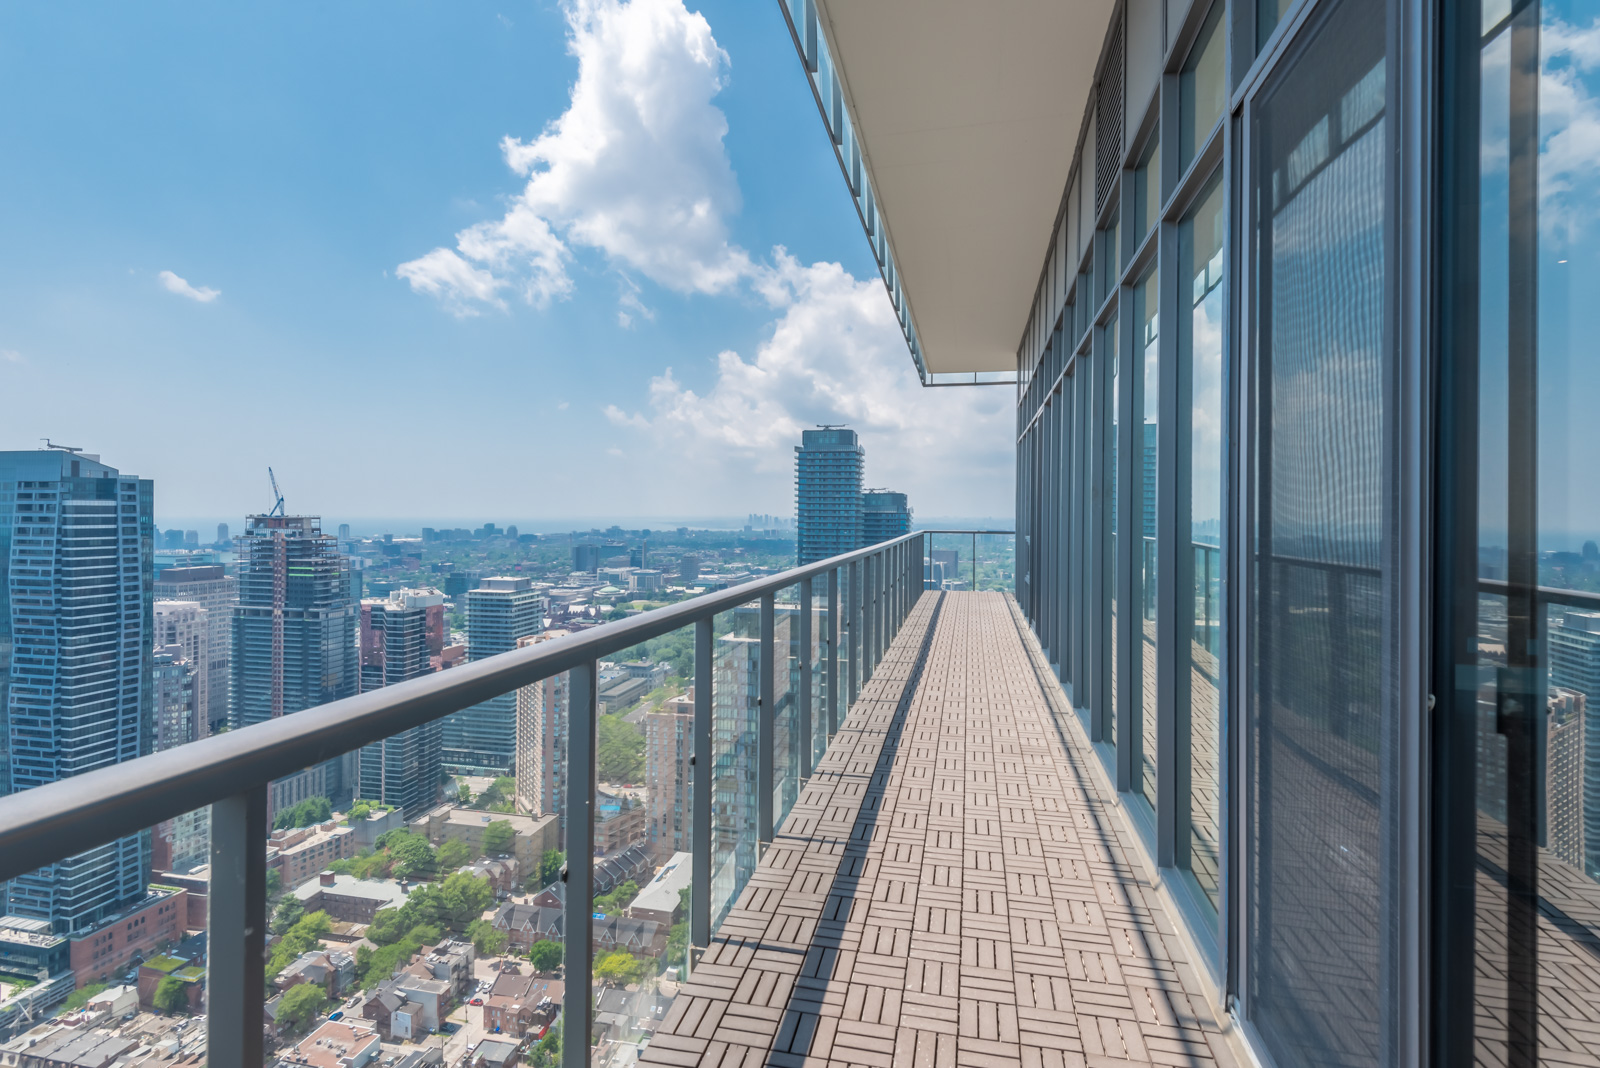 Image of balcony: it's so long and shows a rather lovely view of Toronto.